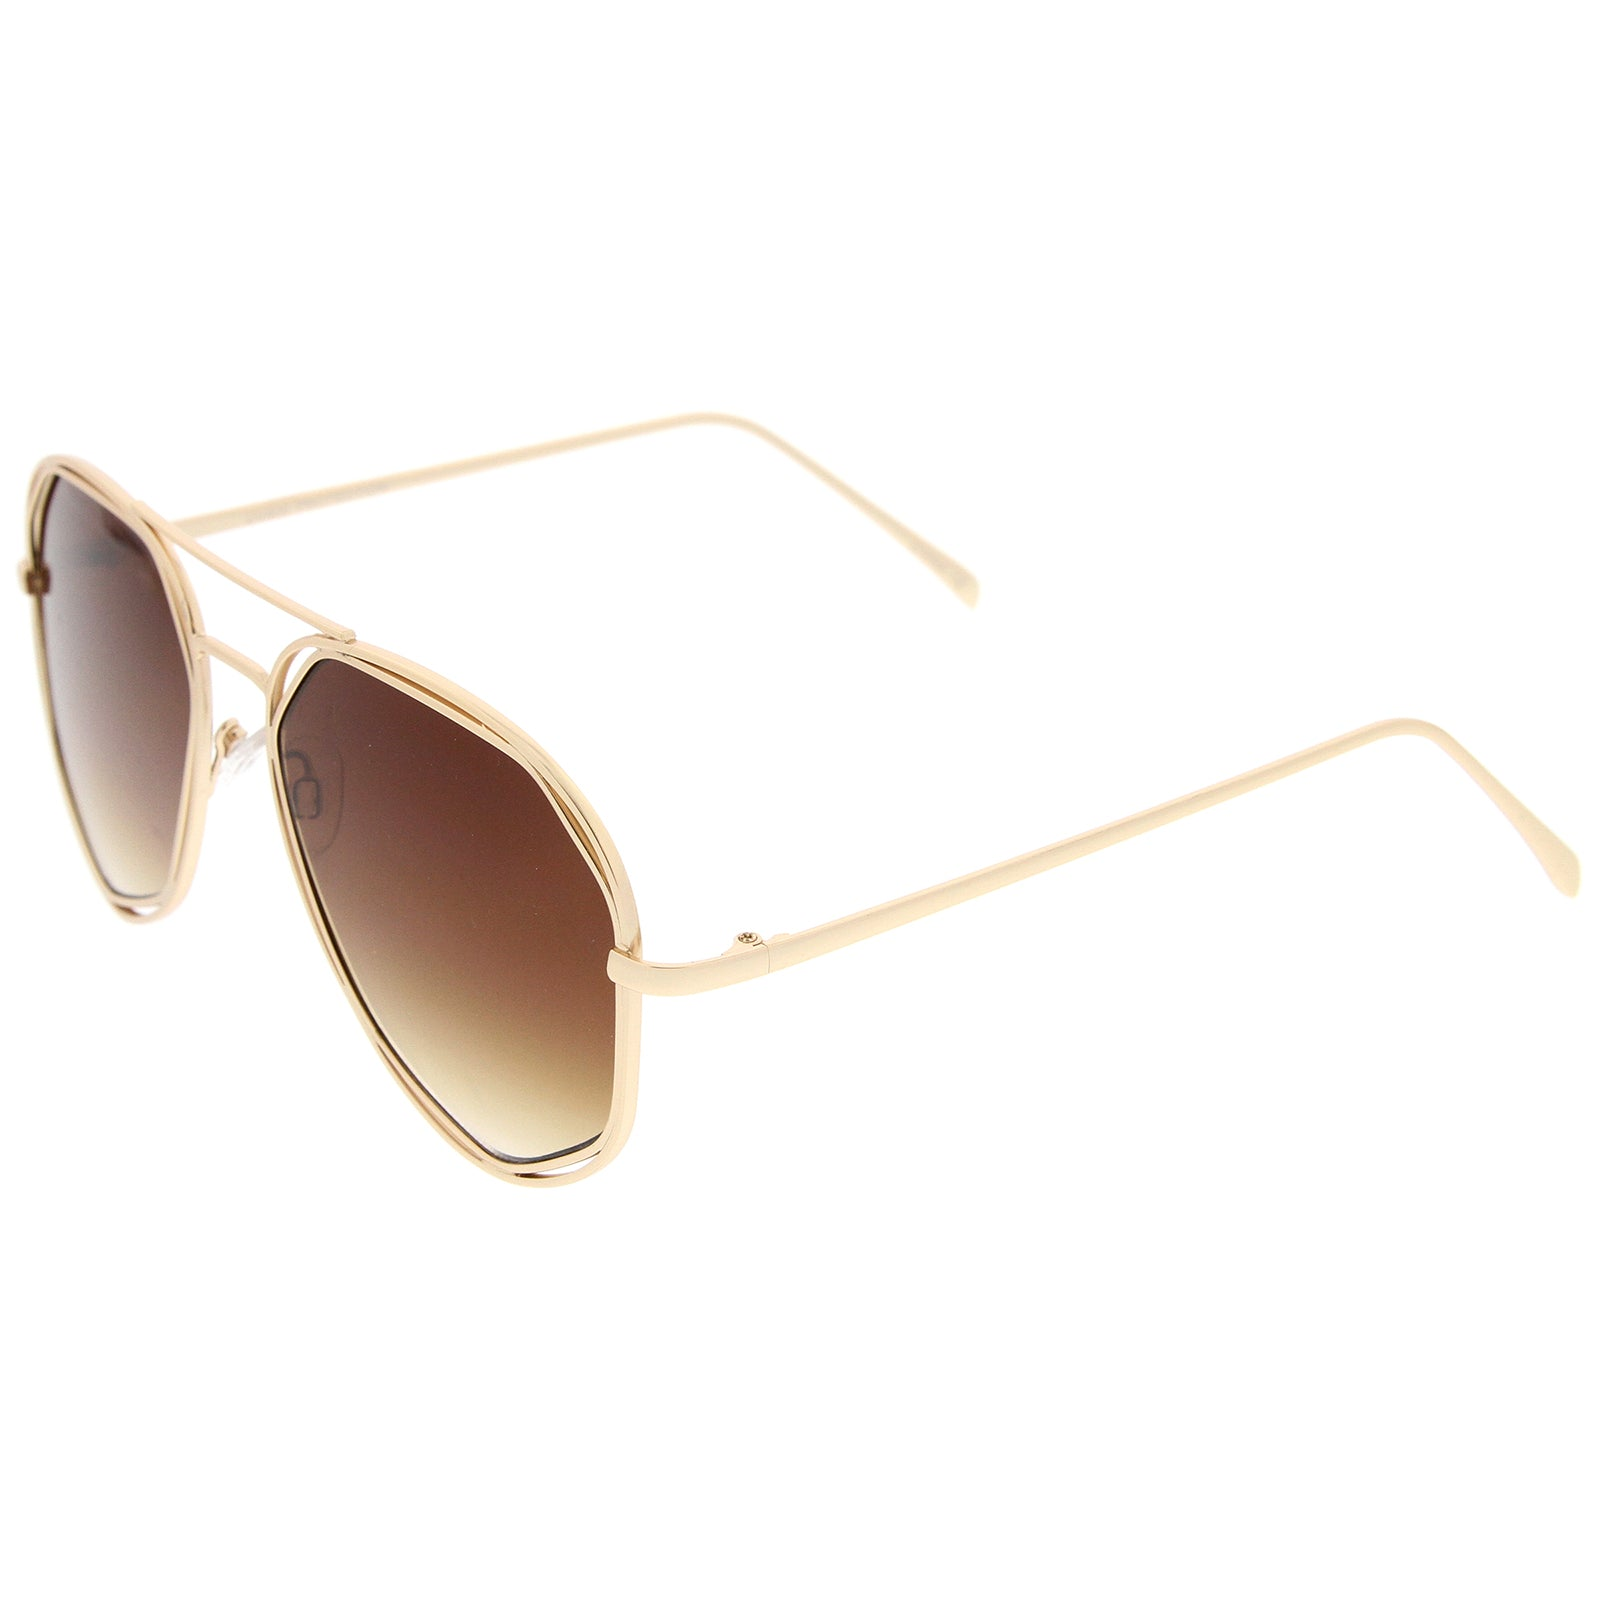 Geometric Hexagonal Metal Frame Neutral Colored Flat Lens Aviator Sunglasses 60mm - sunglass.la - 3